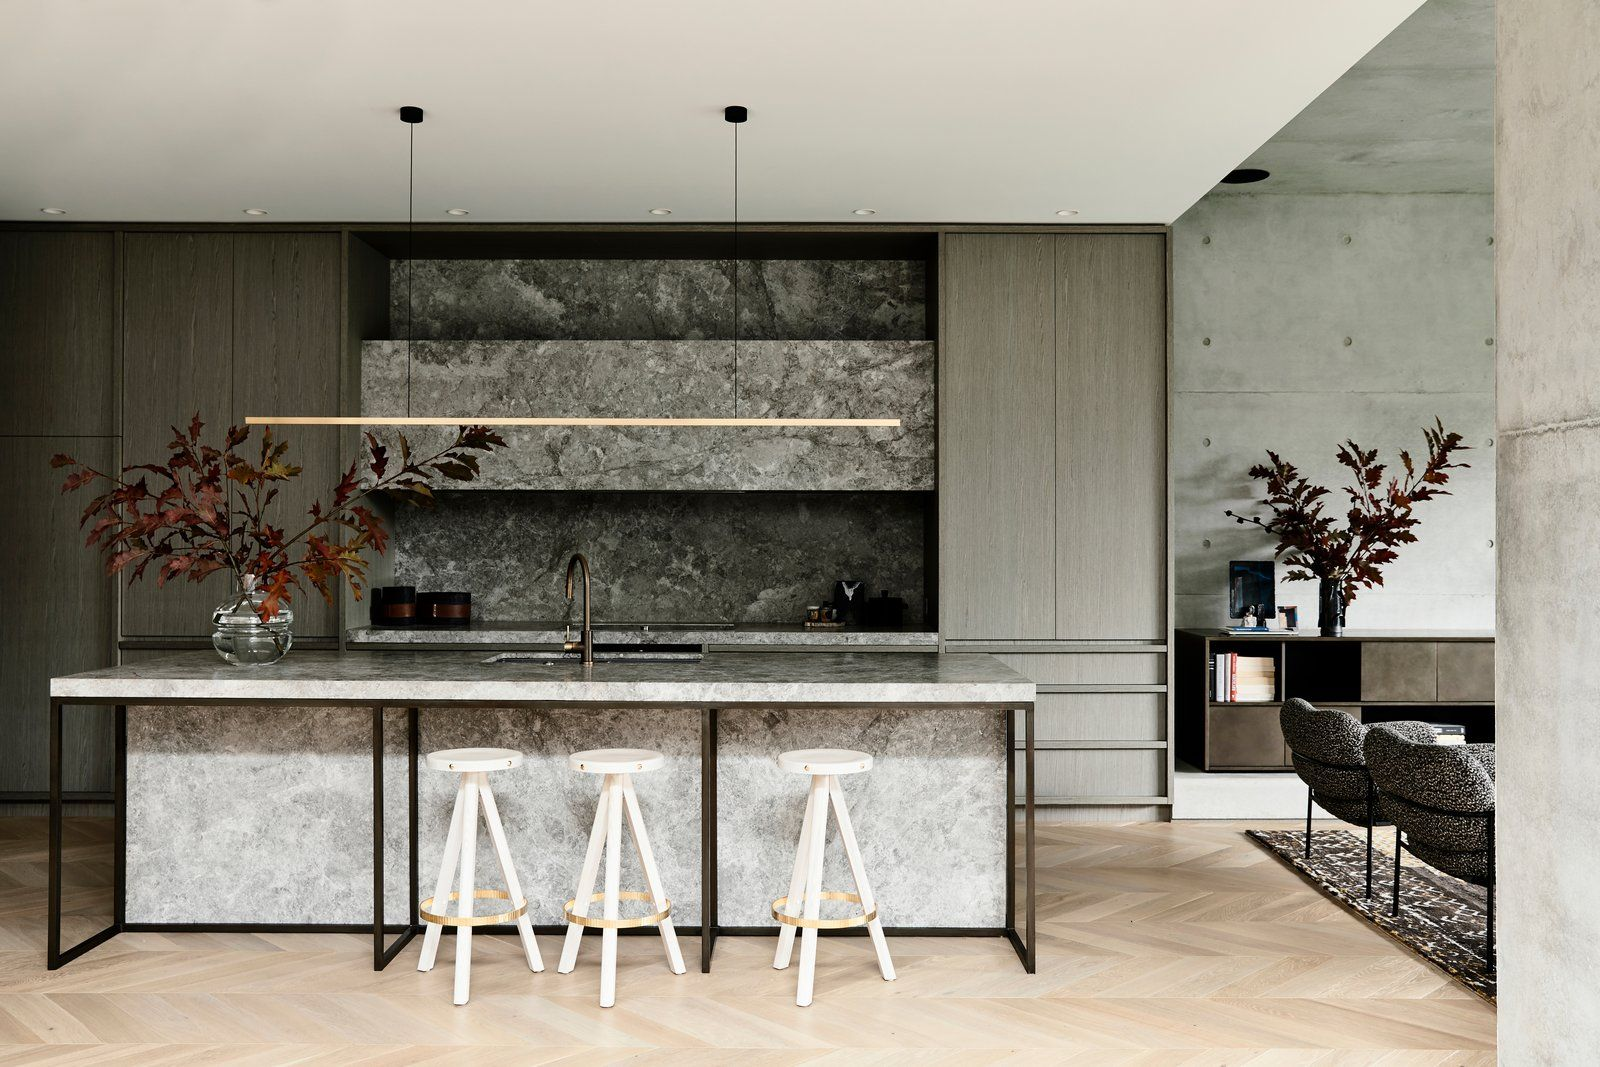 Photo 9 of 9 in A Strong Builder Bond Results in a Sophisticated ...